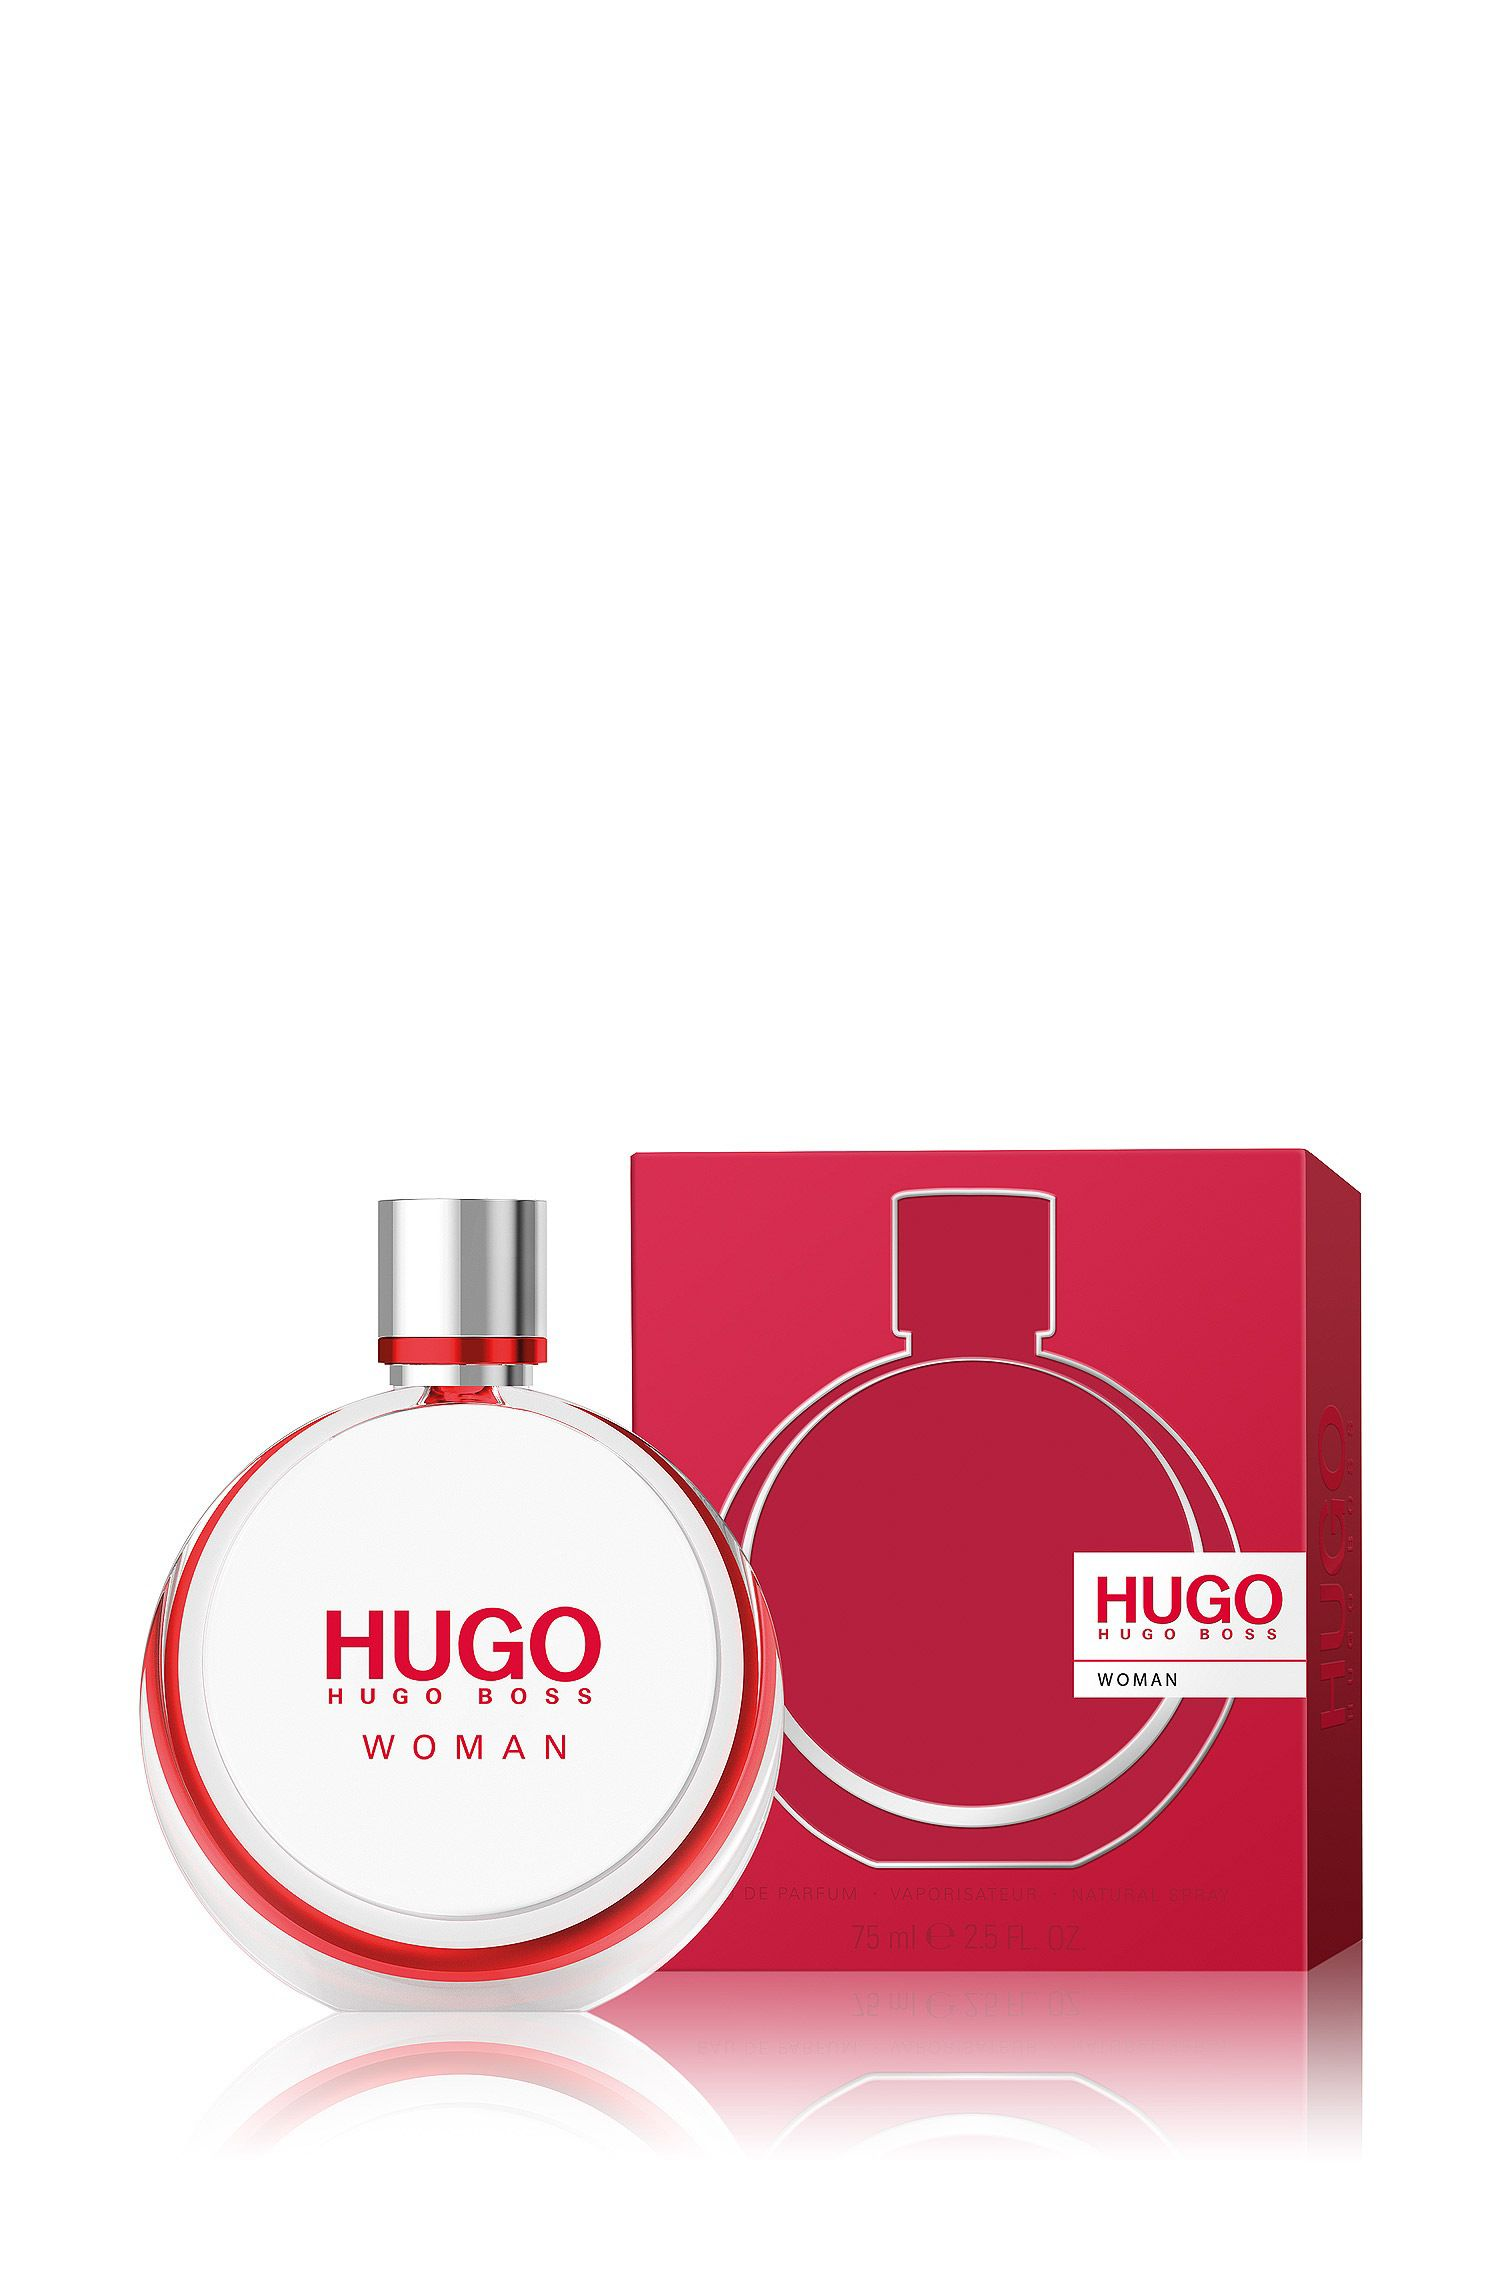 'HUGO Woman' Eau de Parfum 75 ml